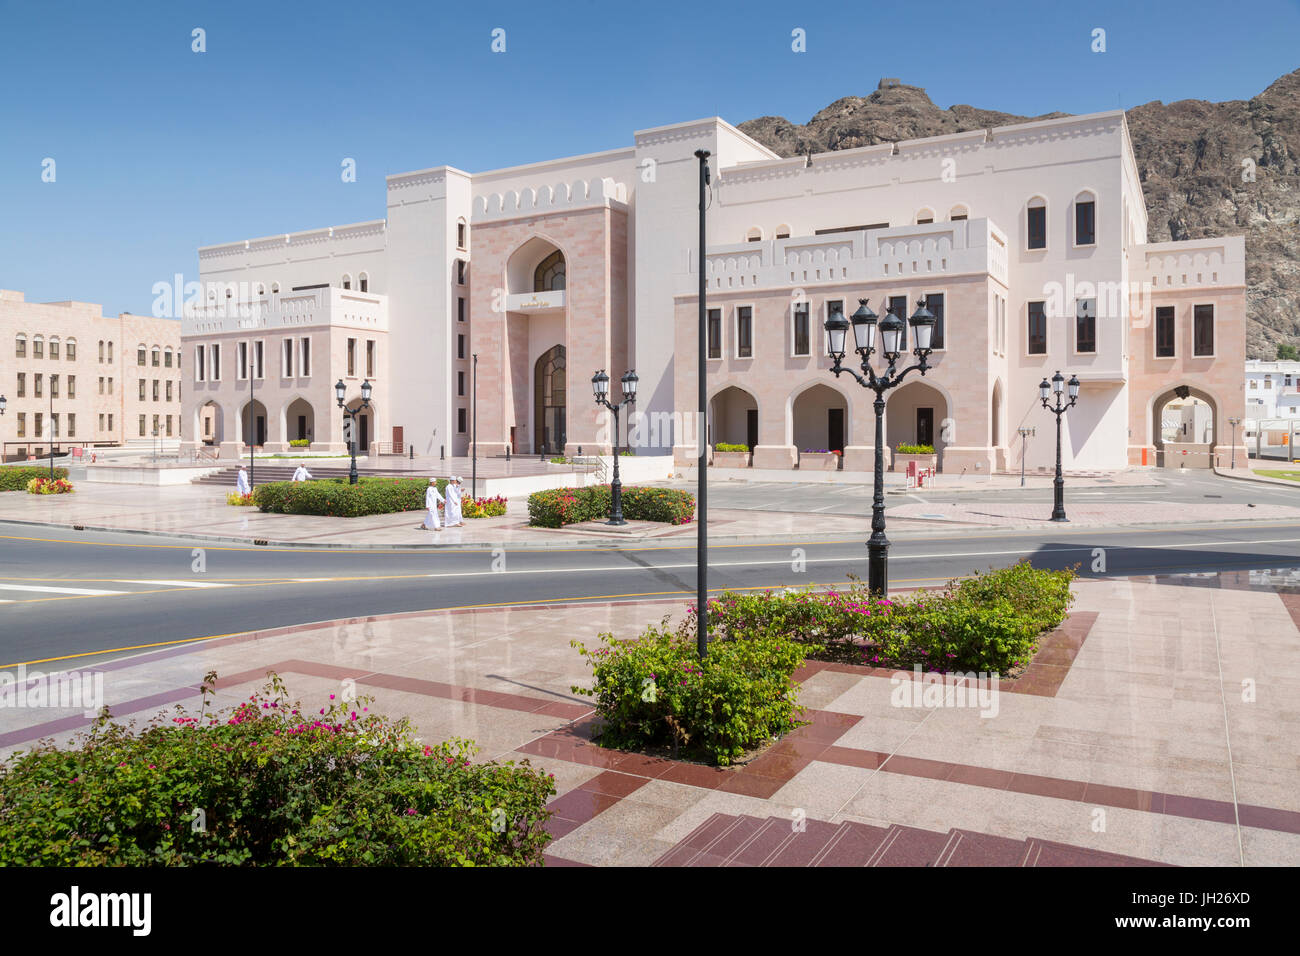 Secretary General for Taxation building at The Sultans Palace, Muscat, Oman, Middle East - Stock Image